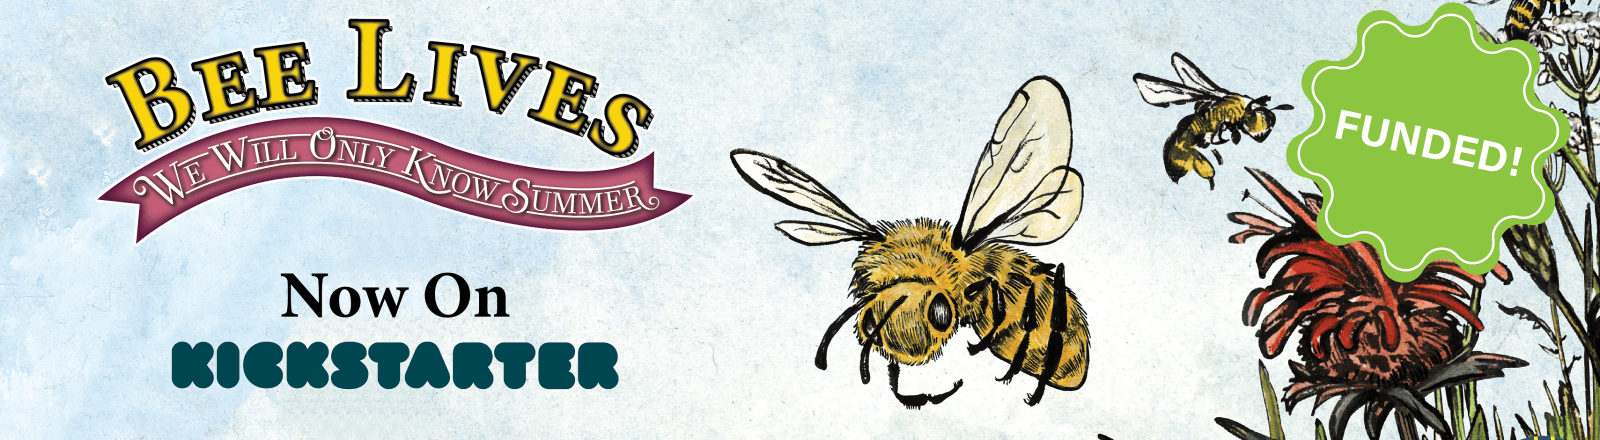 Bee Lives has Funded on Kickstarter!!!